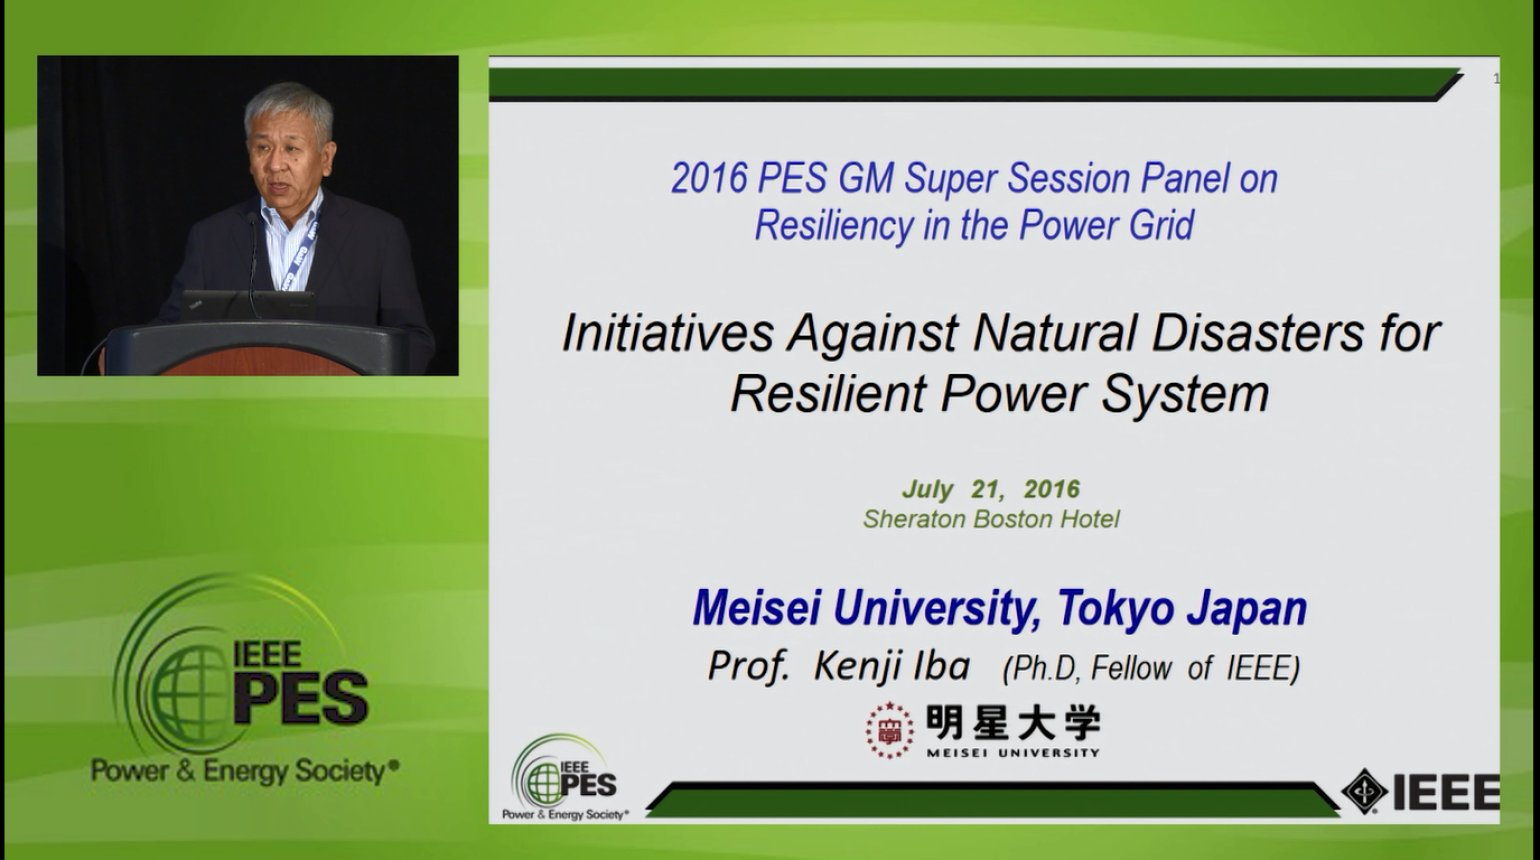 Resiliency in the Power Grid - Initiatives Against Natural Disasters for Resilient Power System (Video)